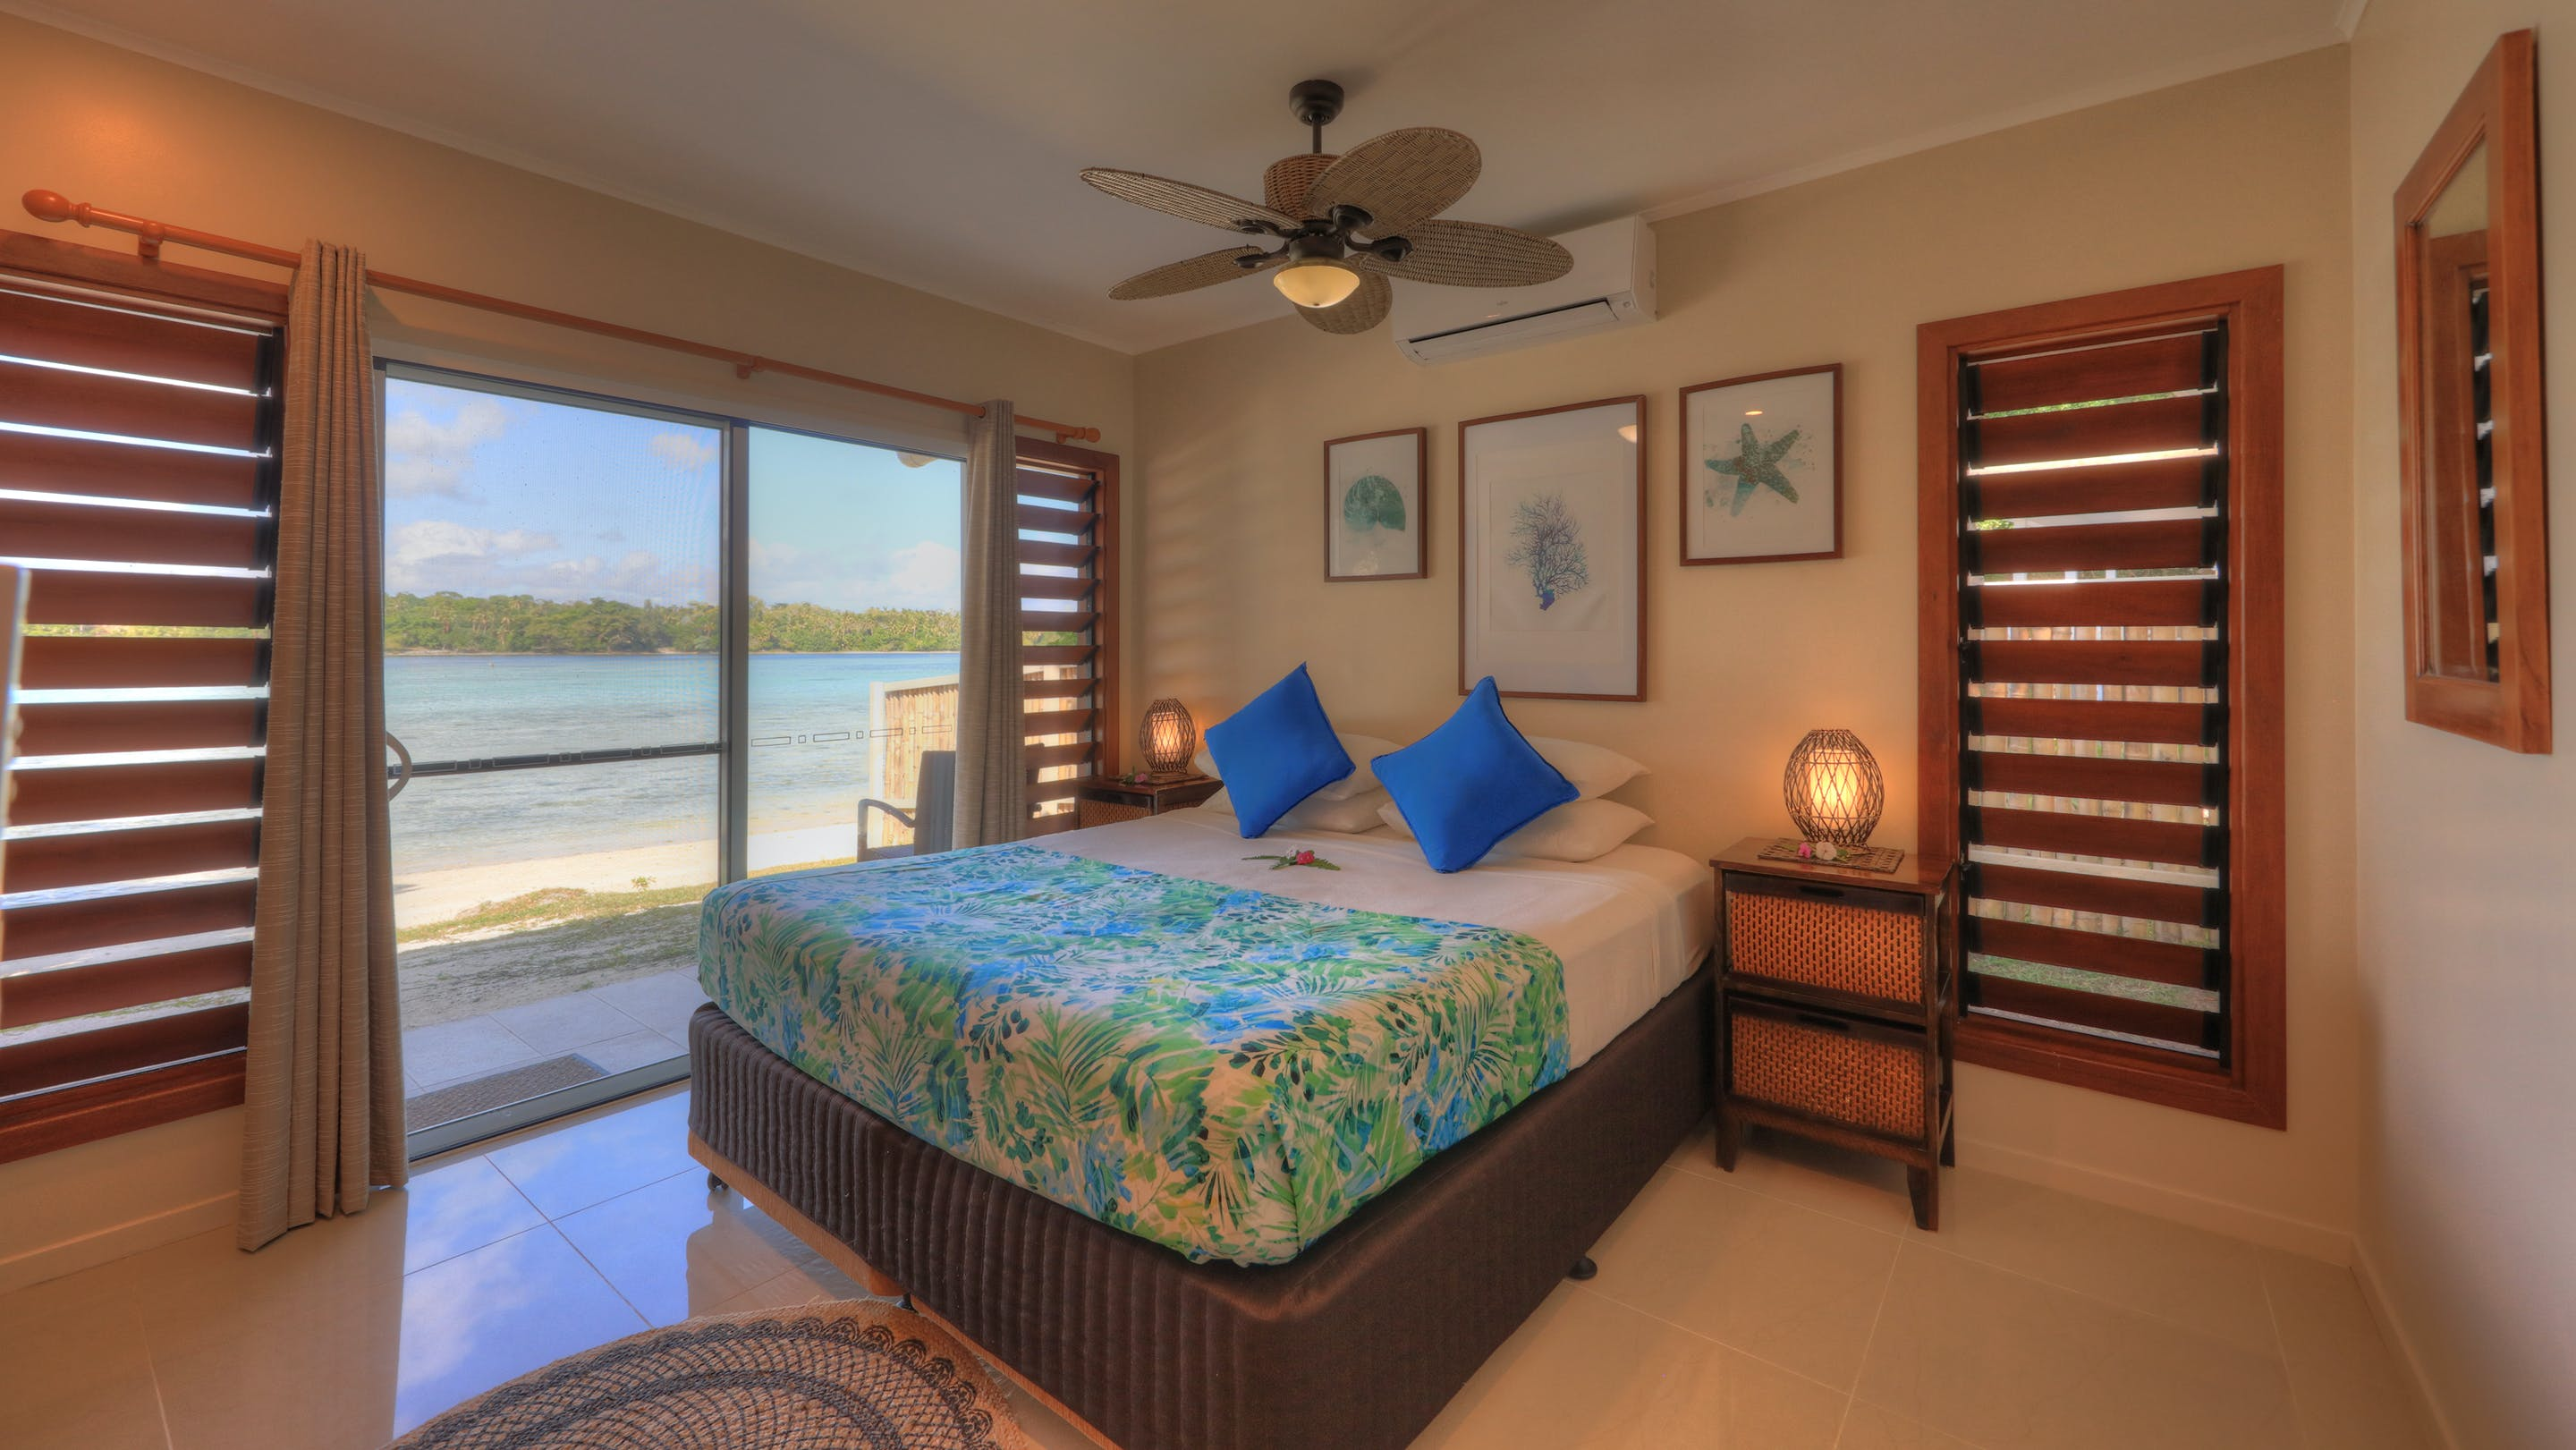 erakor island resort beach cottage #erakorislandresort #tropicalislandholiday erakor island resort beach cottage bedroom